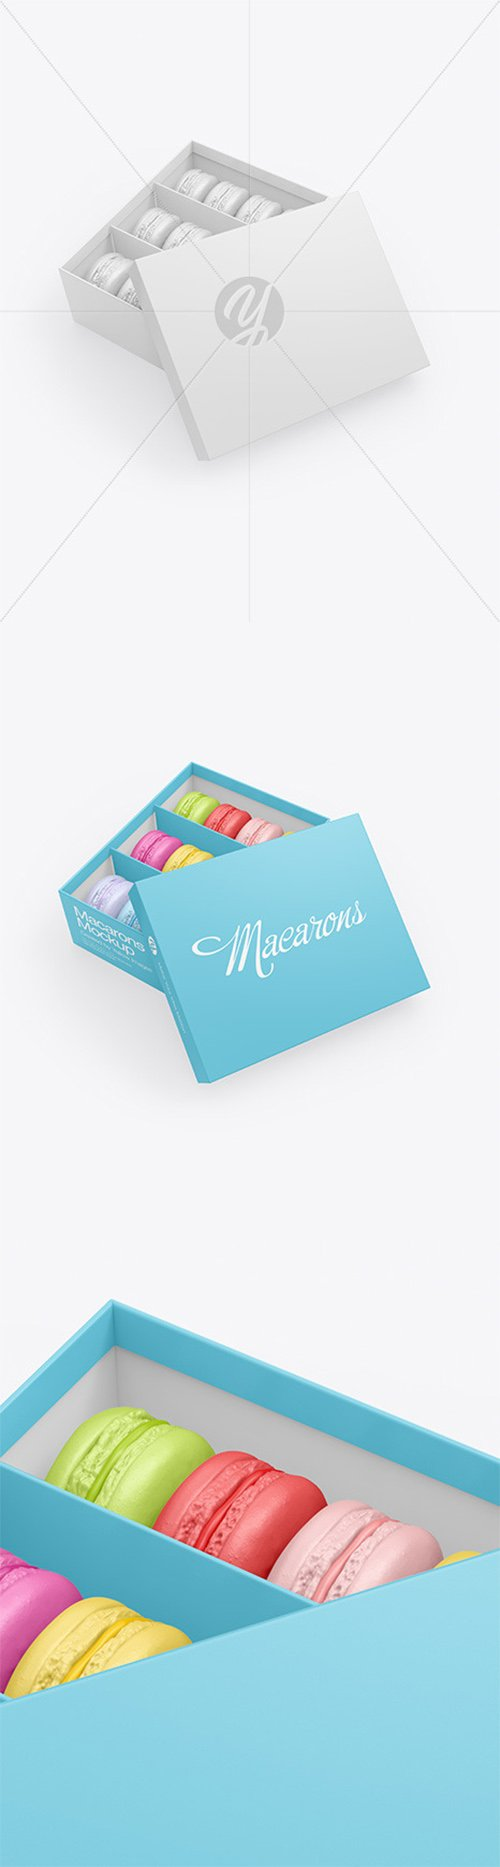 Opened Paper Box With Macarons Mockup 65626